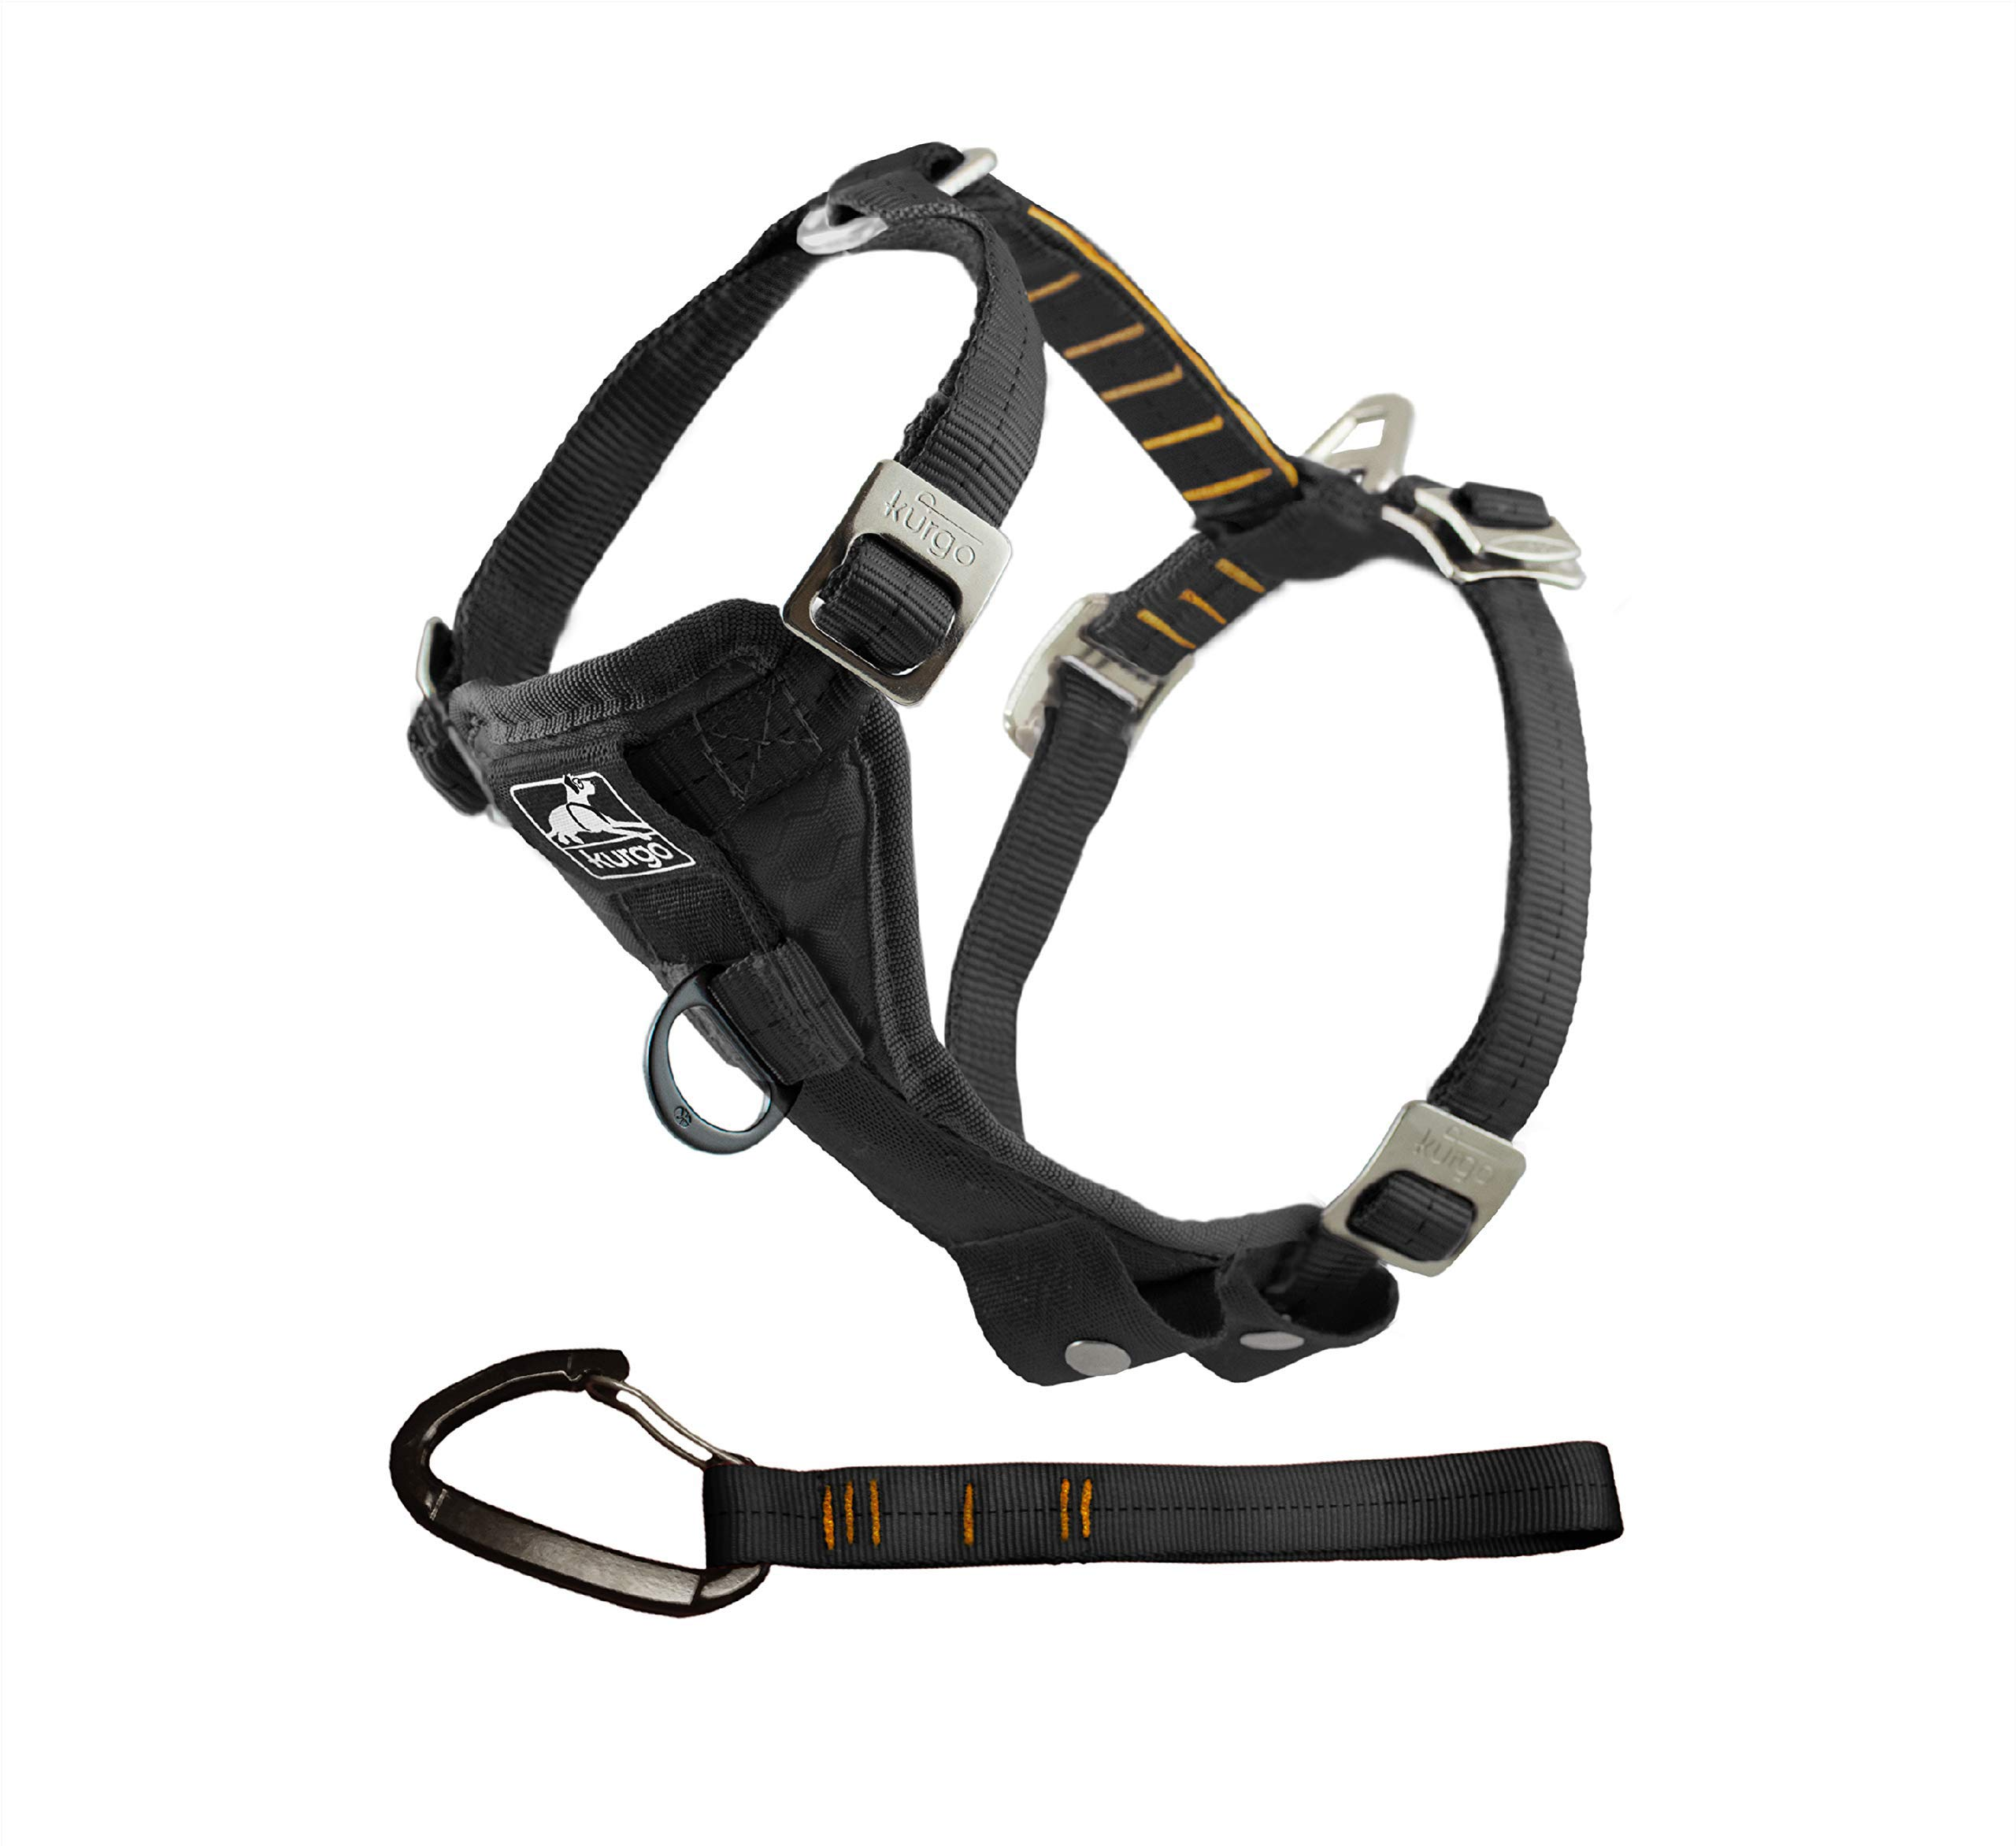 Kurgo Dog Harness | Pet Walking Harness | Car Harness for Dogs | Front D-Ring for No Pull Training | Includes Dog Seat…